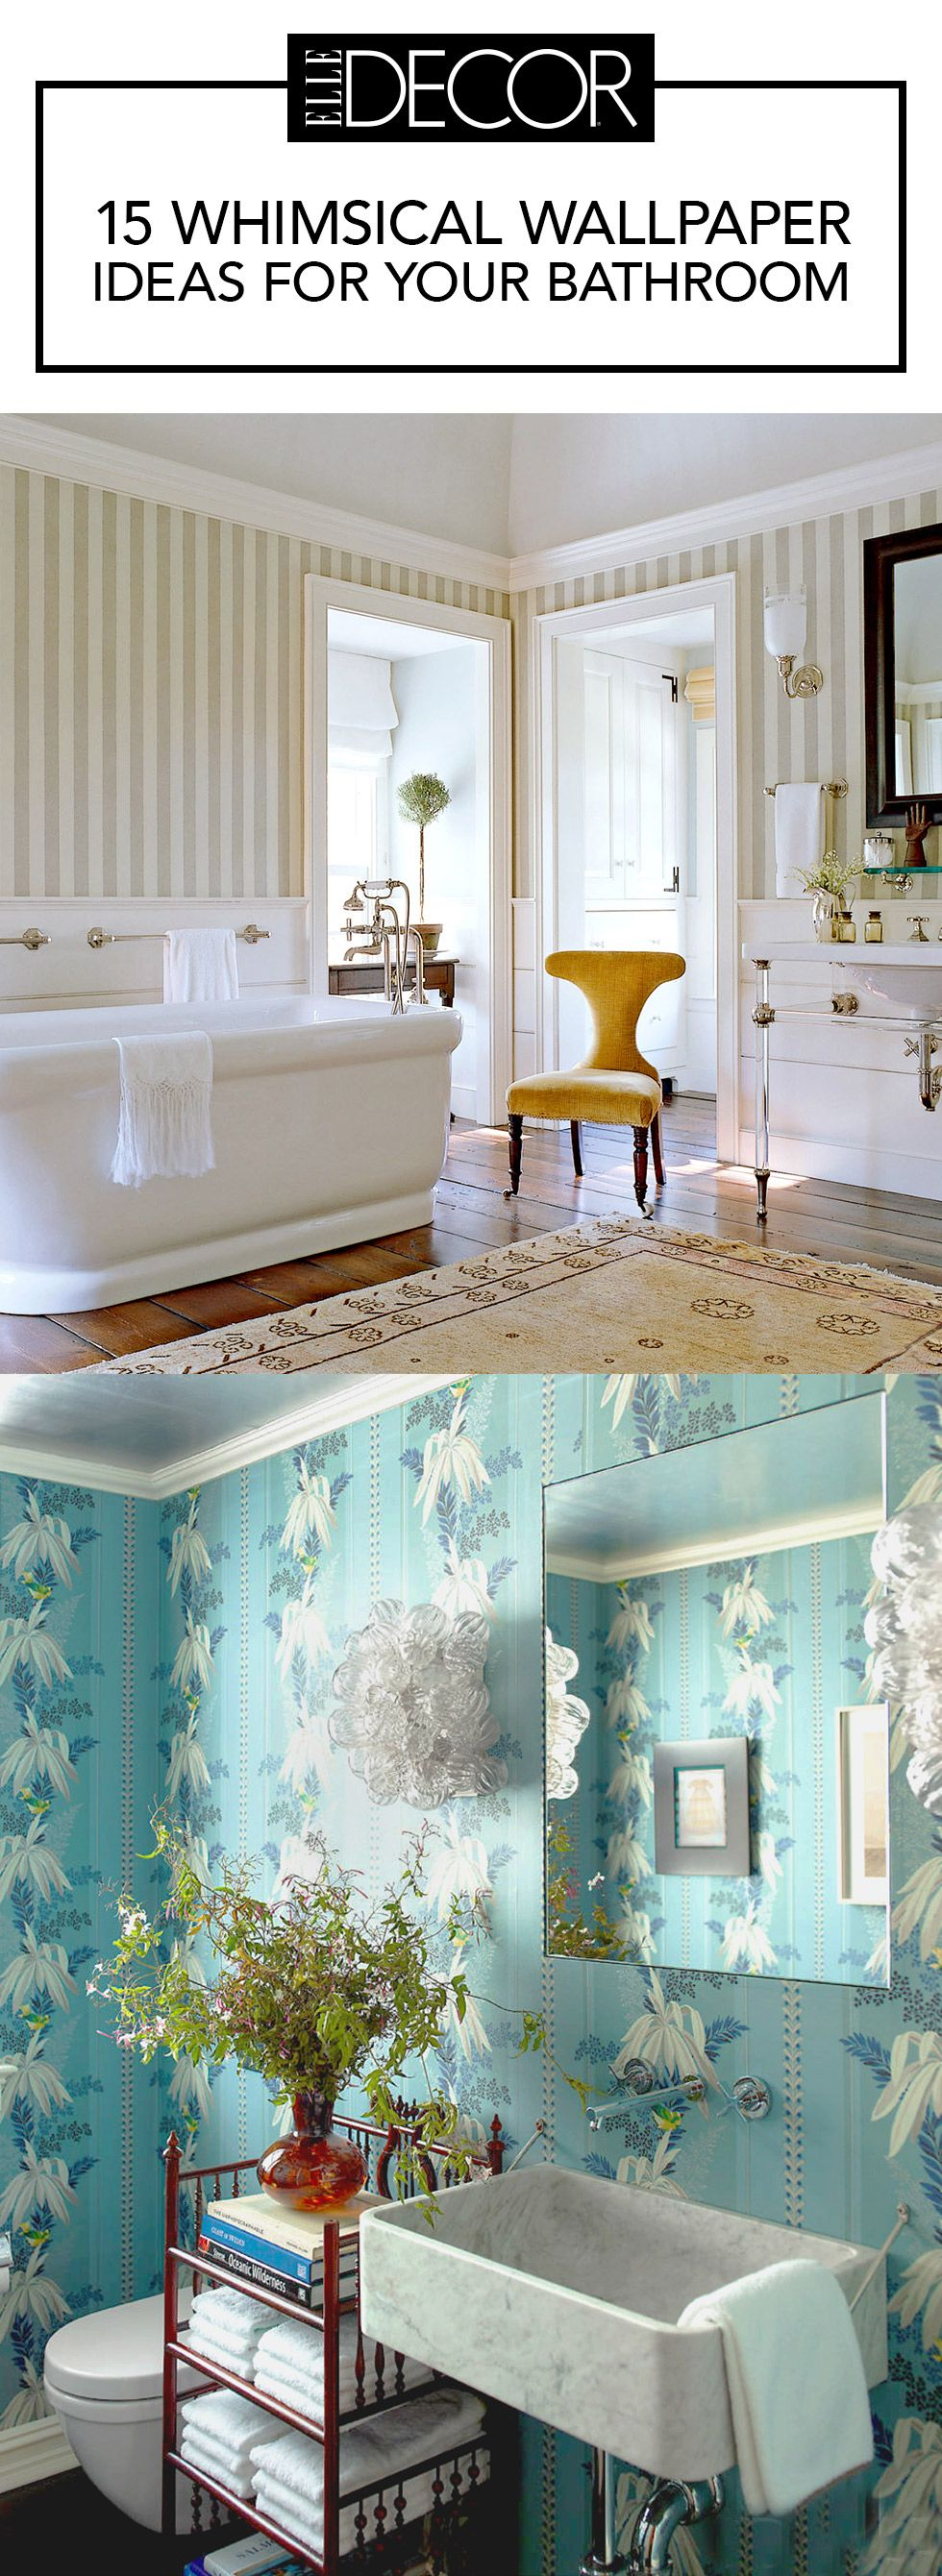 15 Bathroom Wallpaper Ideas - Wall Coverings for Bathrooms - Elle Decor